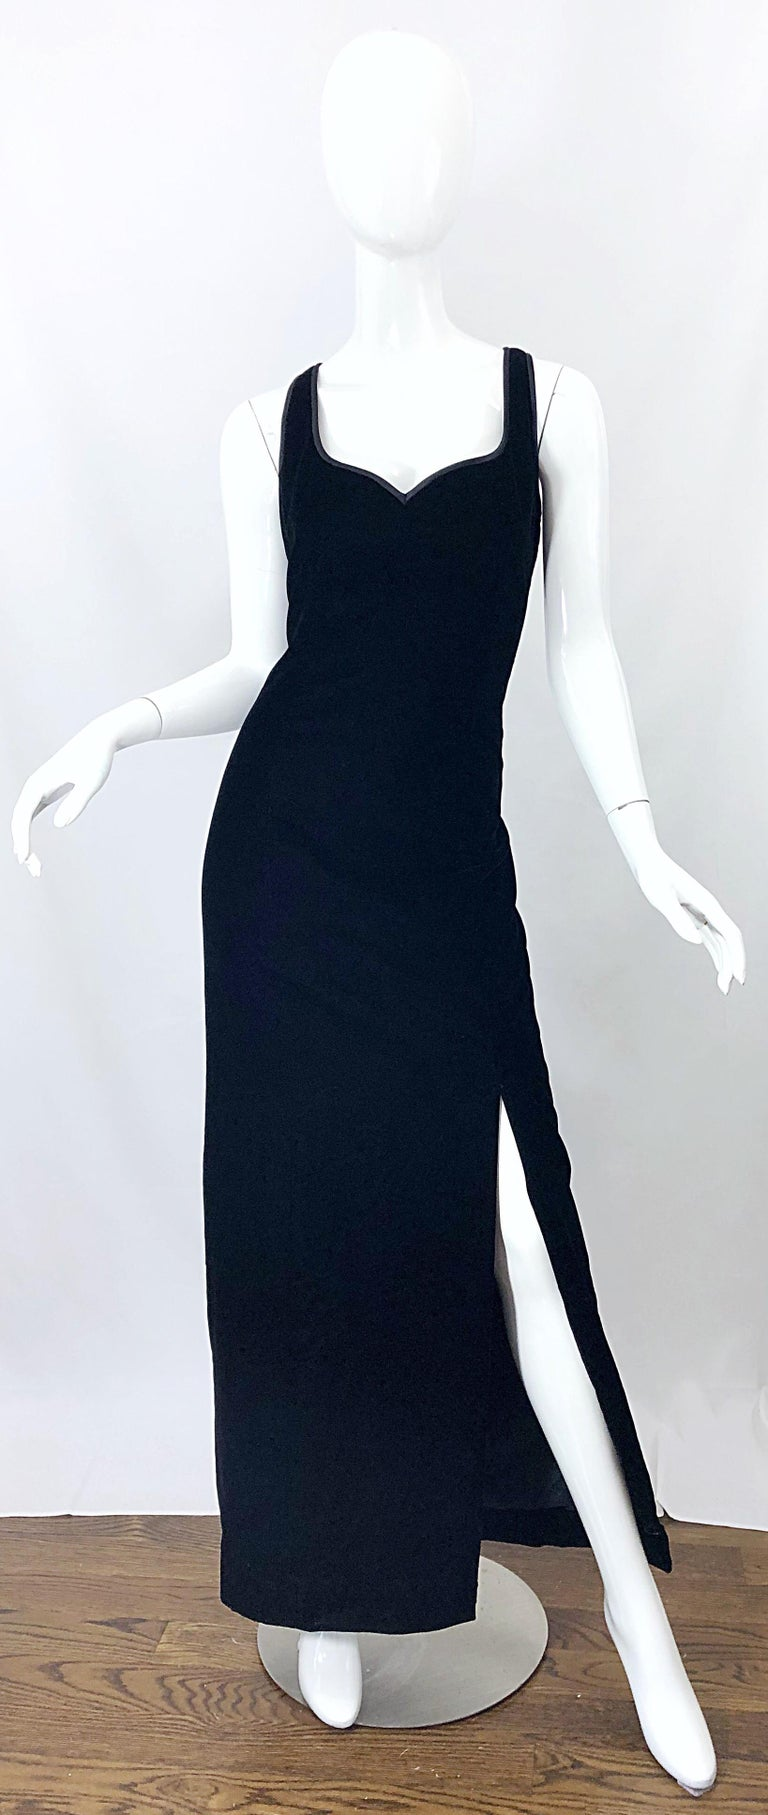 Beautiful vintage 90s BOB MACKIE black velvet sleeveless evening gown! Features a flattering satin lined sweetheart neckline and a thigh high slit that reveals just the right amount of leg. Hidden zipper up the back with hook-and-eye closure. The